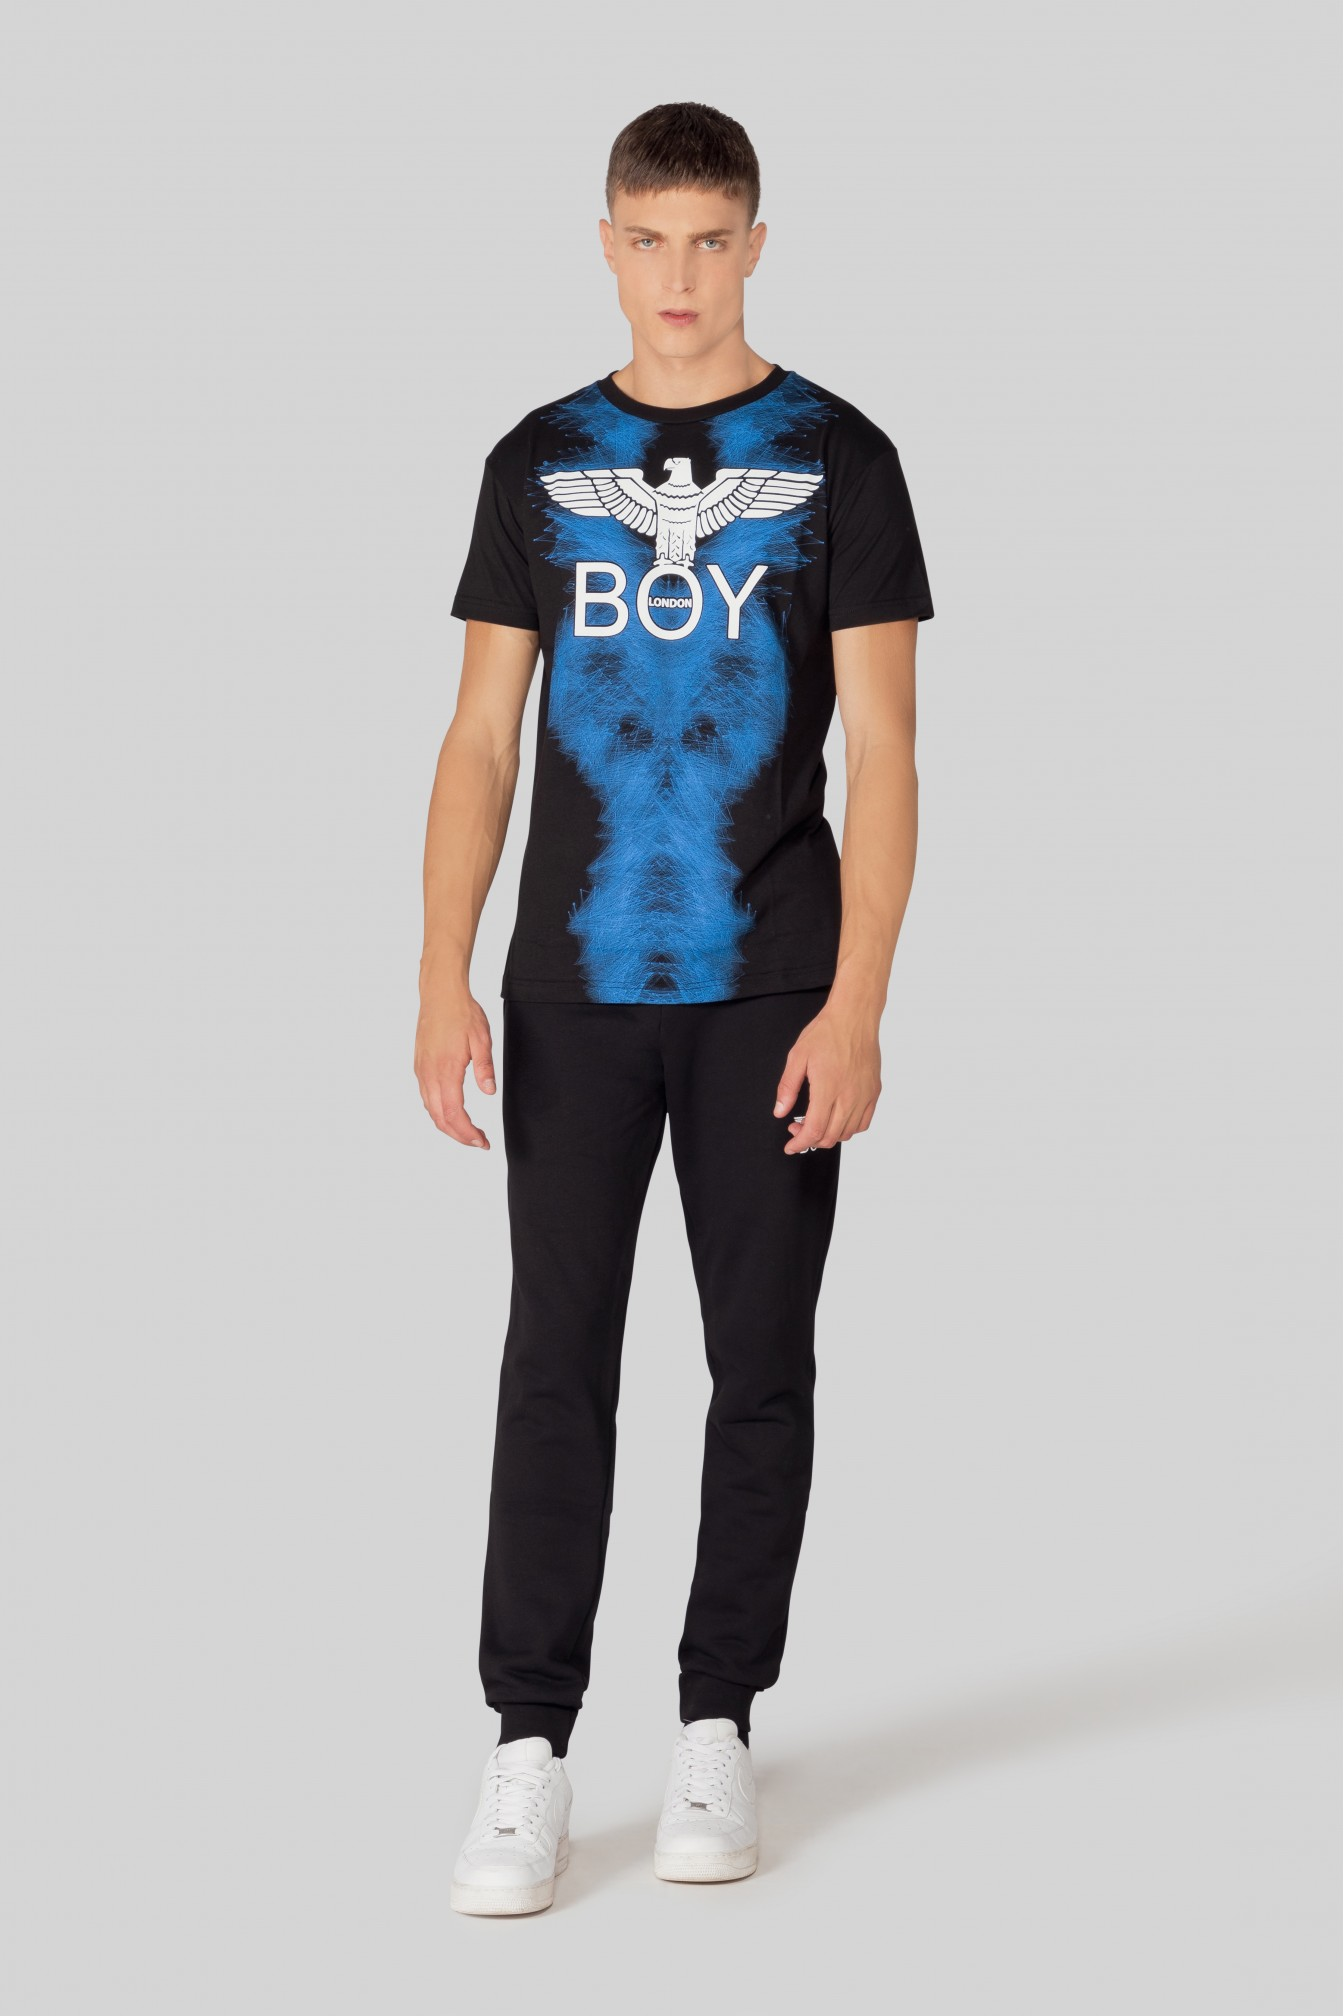 T-SHIRT - BLU6752 - BOY LONDON